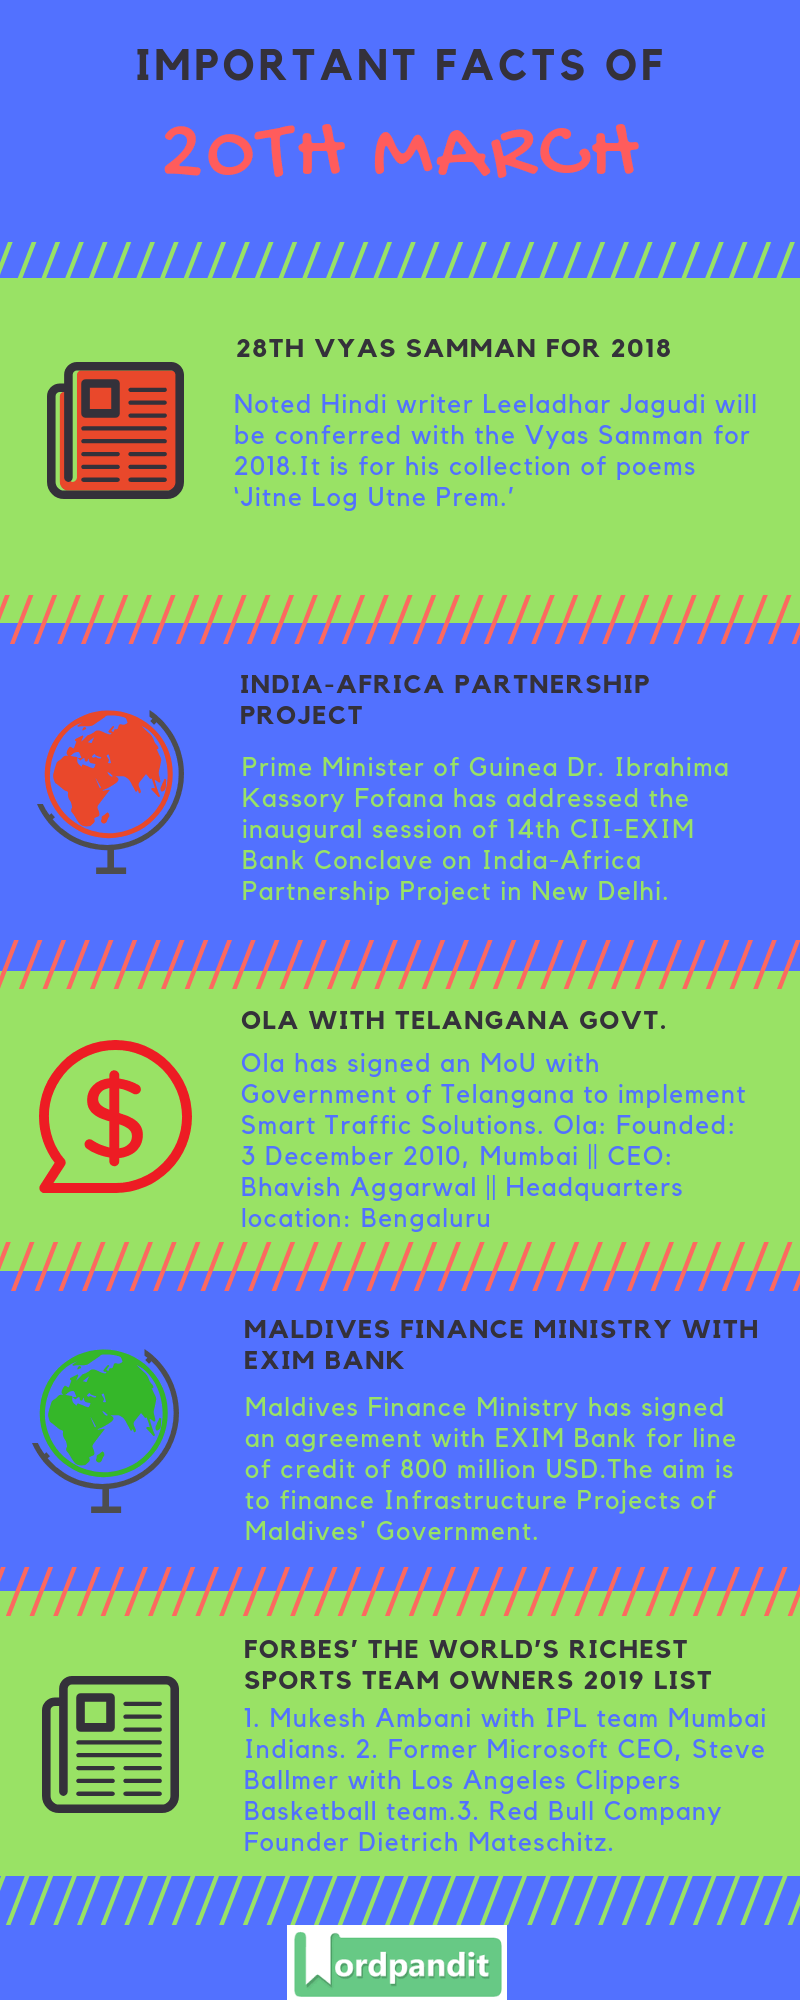 Daily Current Affairs 20 March 2019 Current Affairs Quiz 20 March 2019 Current Affairs Infographic